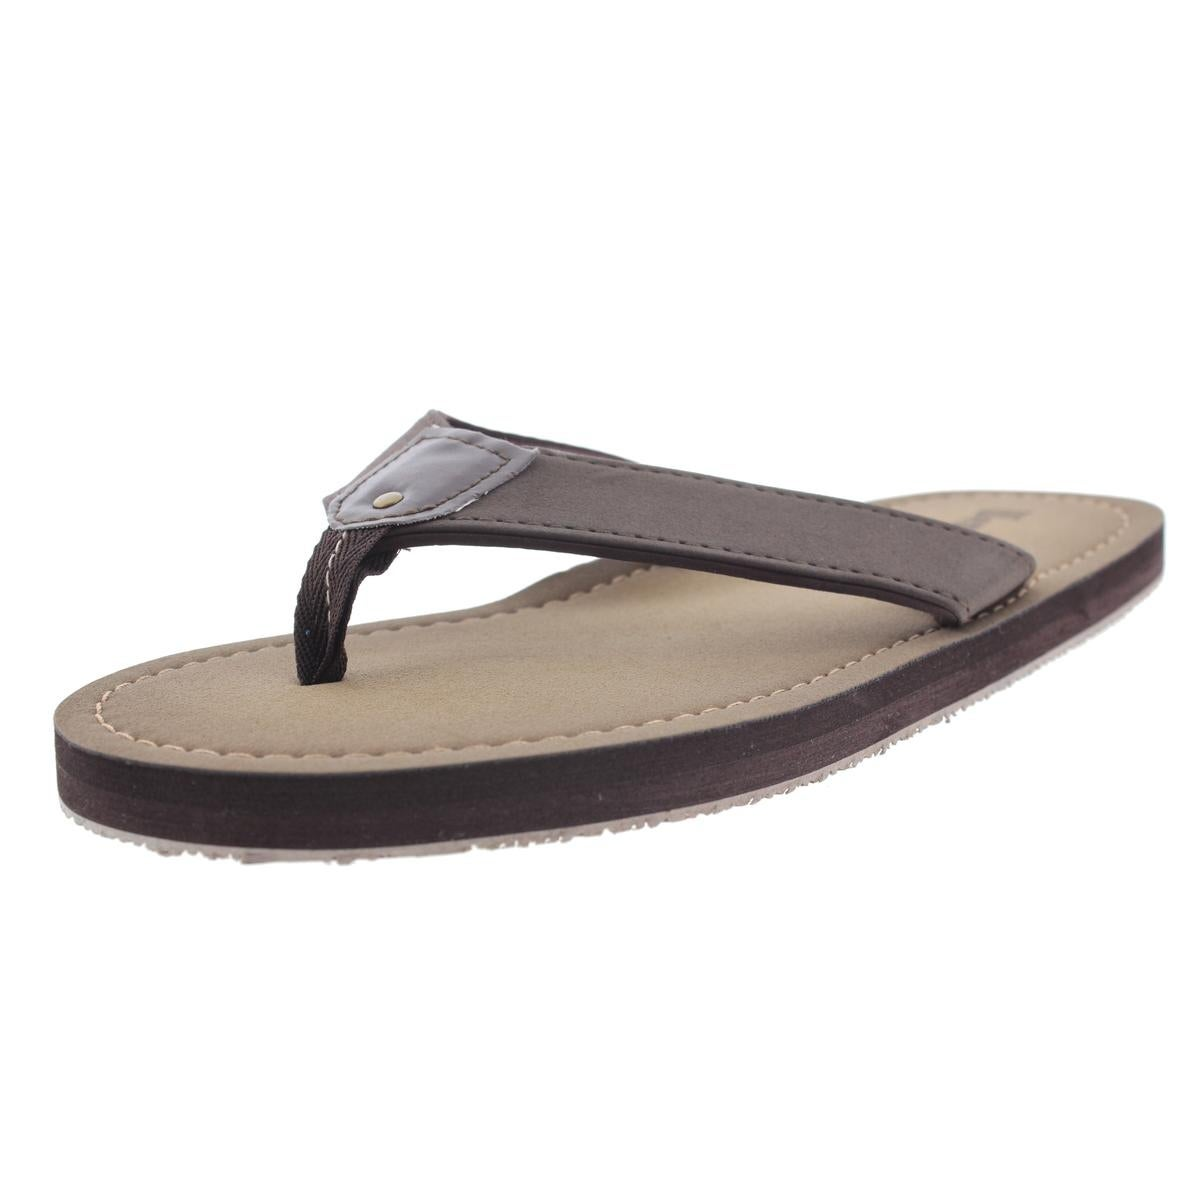 2c8afcc903e33 Shop Wembley Mens Flip-Flops Distressed Frayed - Free Shipping On Orders  Over  45 - Overstock - 13061189